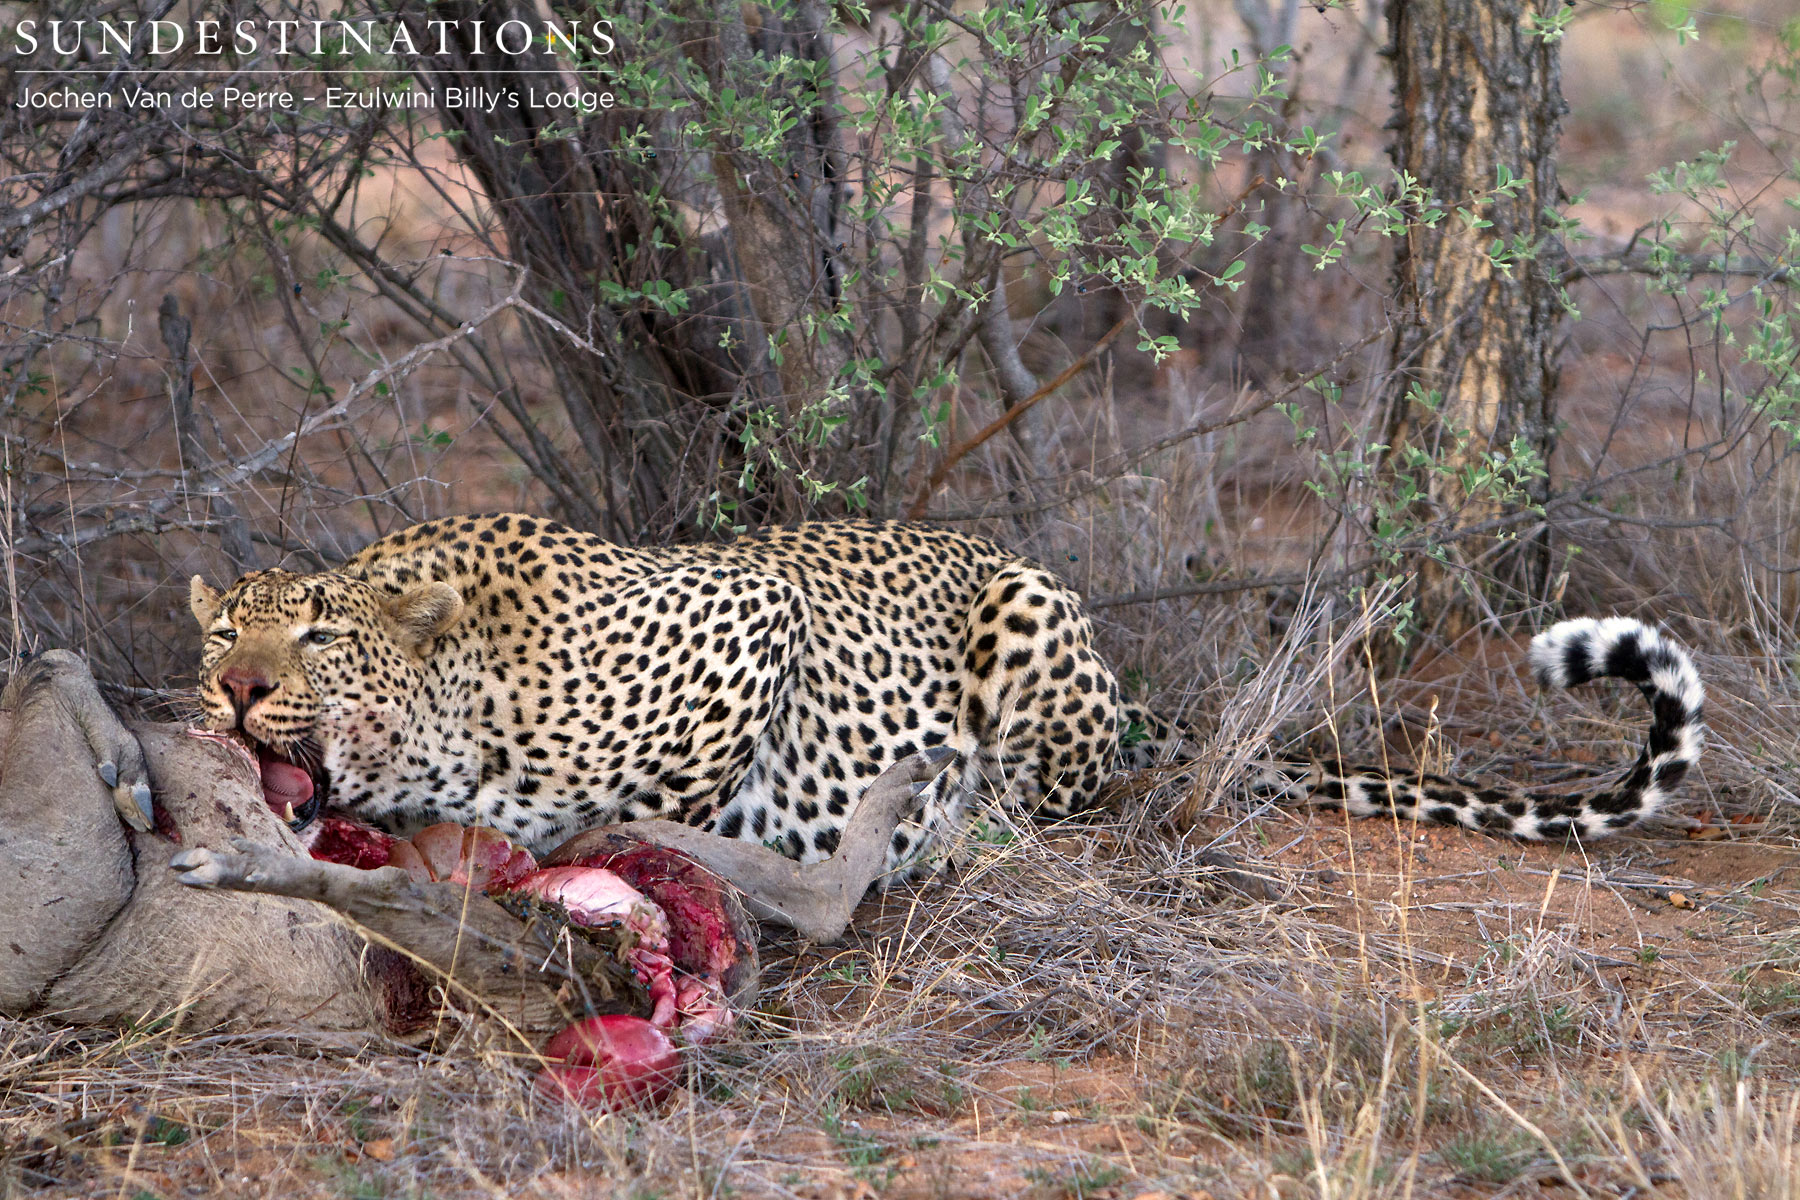 Chavaluthu the leopard kills a warthog at Ezulwini